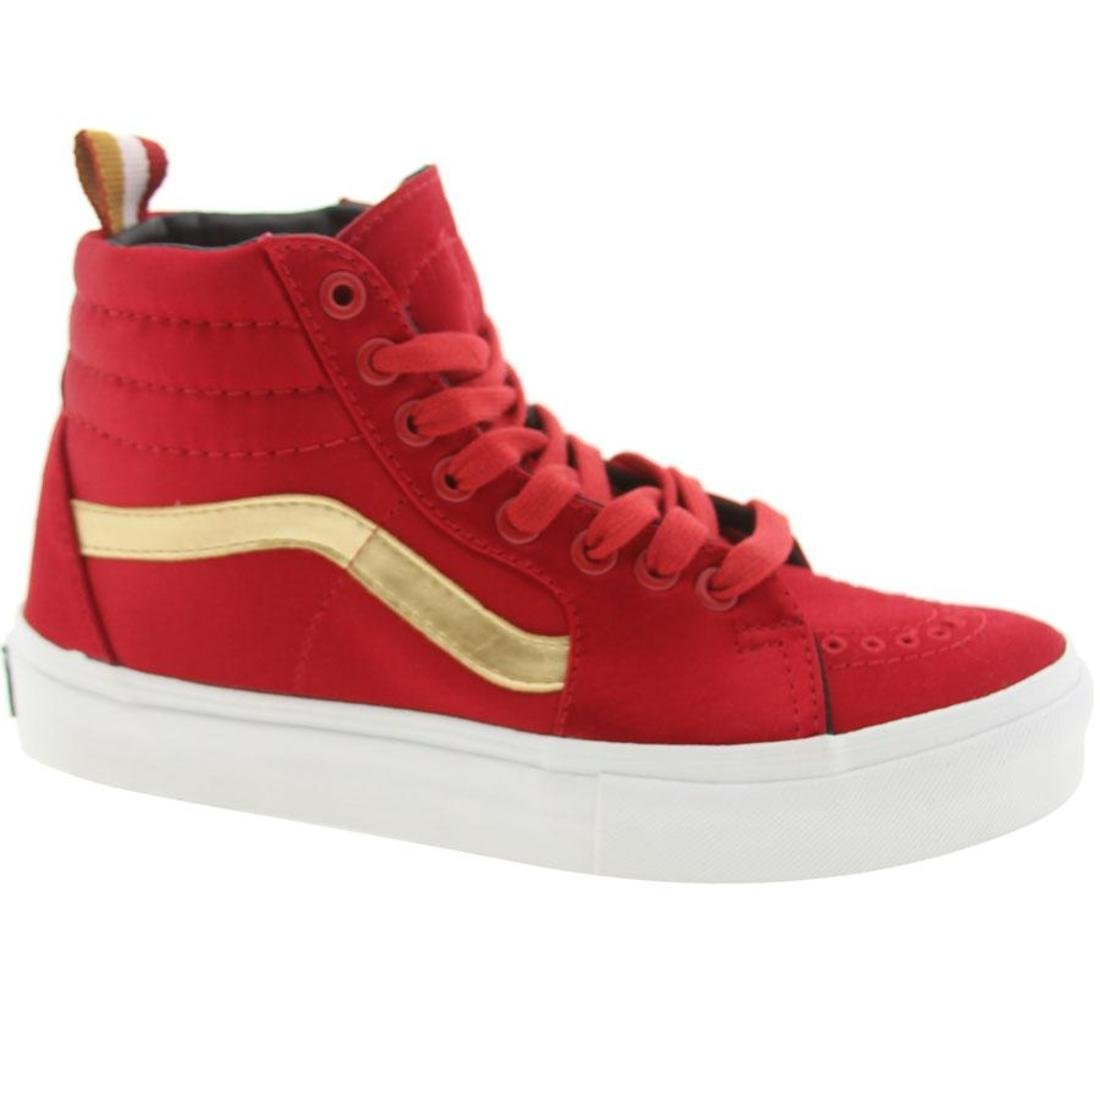 all red vans with gold